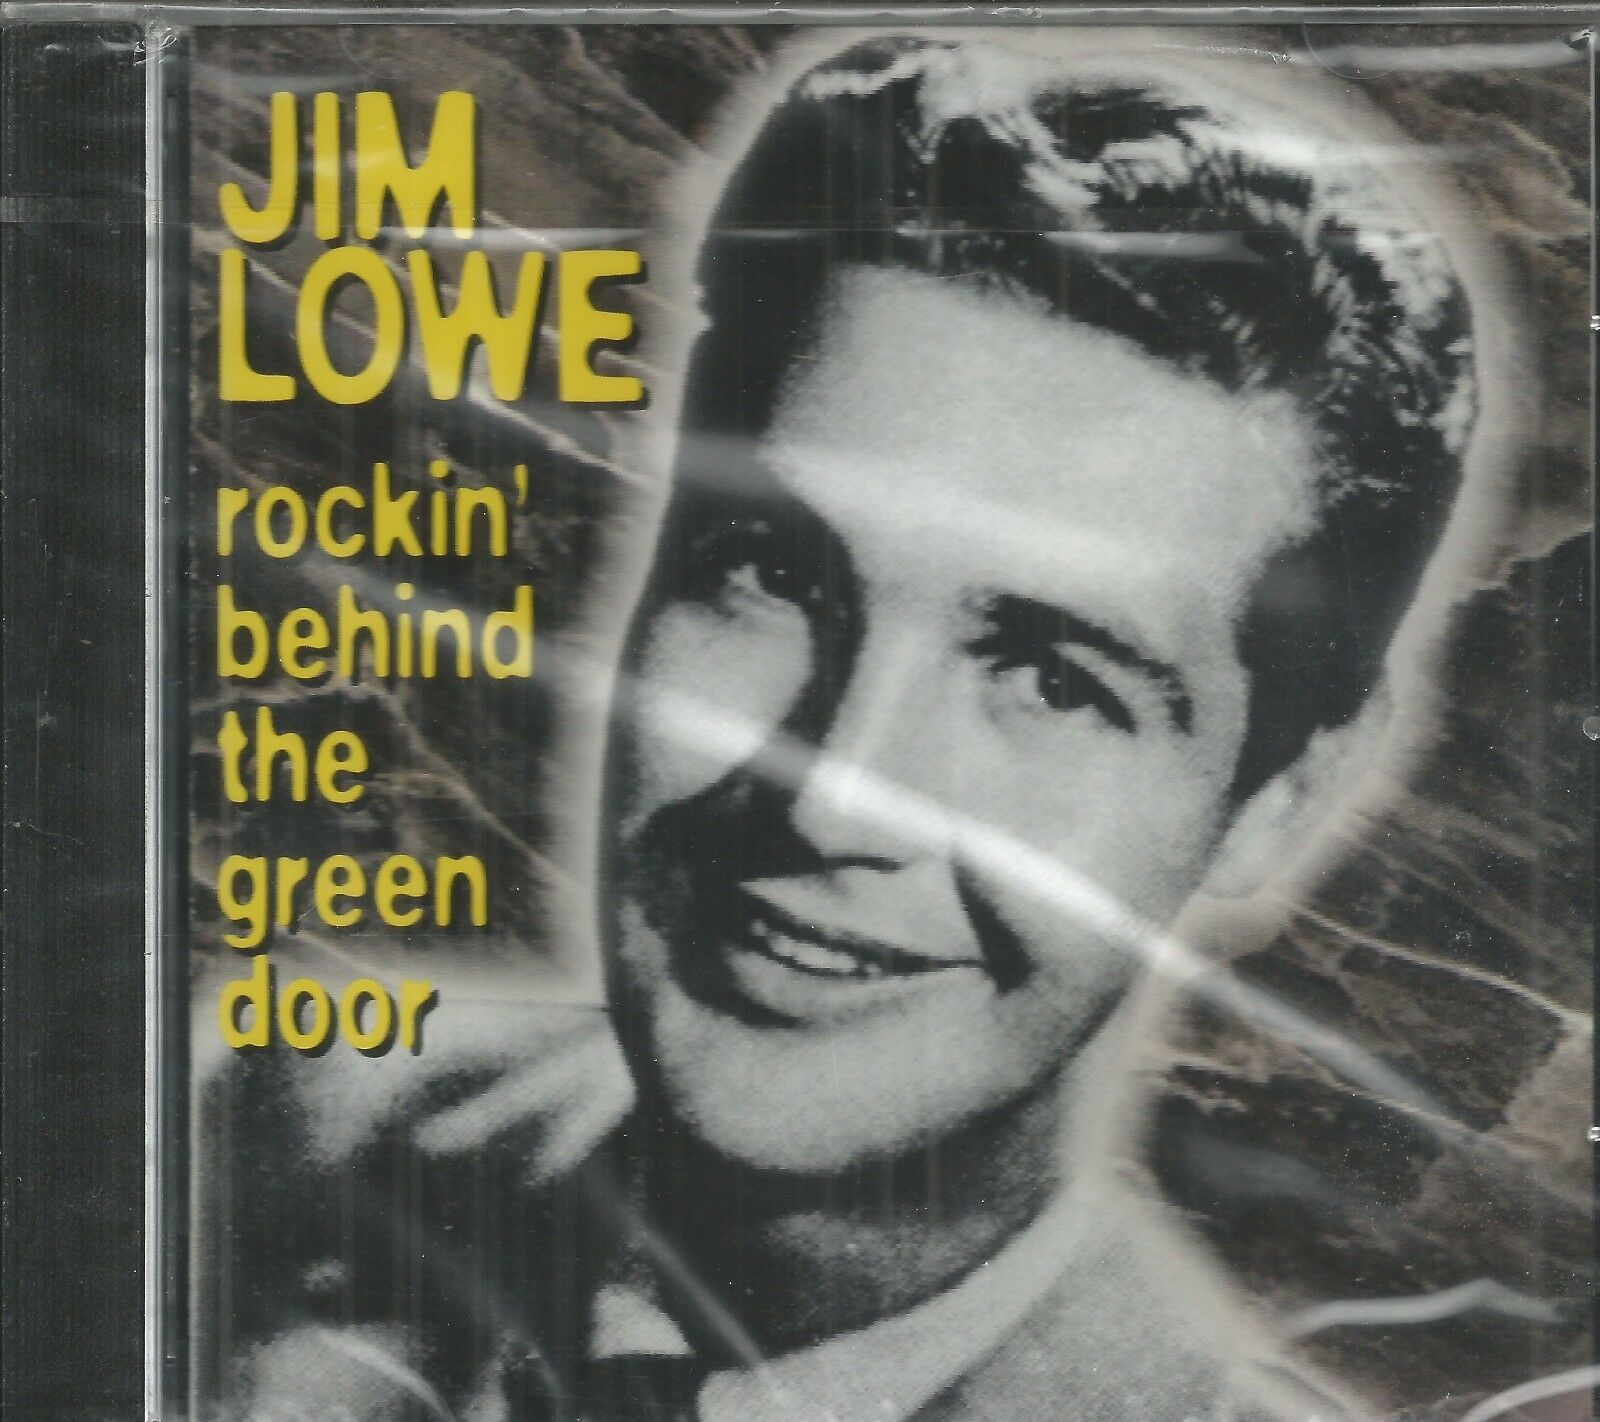 Behind The Green Door Pics jim lowe rockin' behind the green door 33 greatest hits cd &